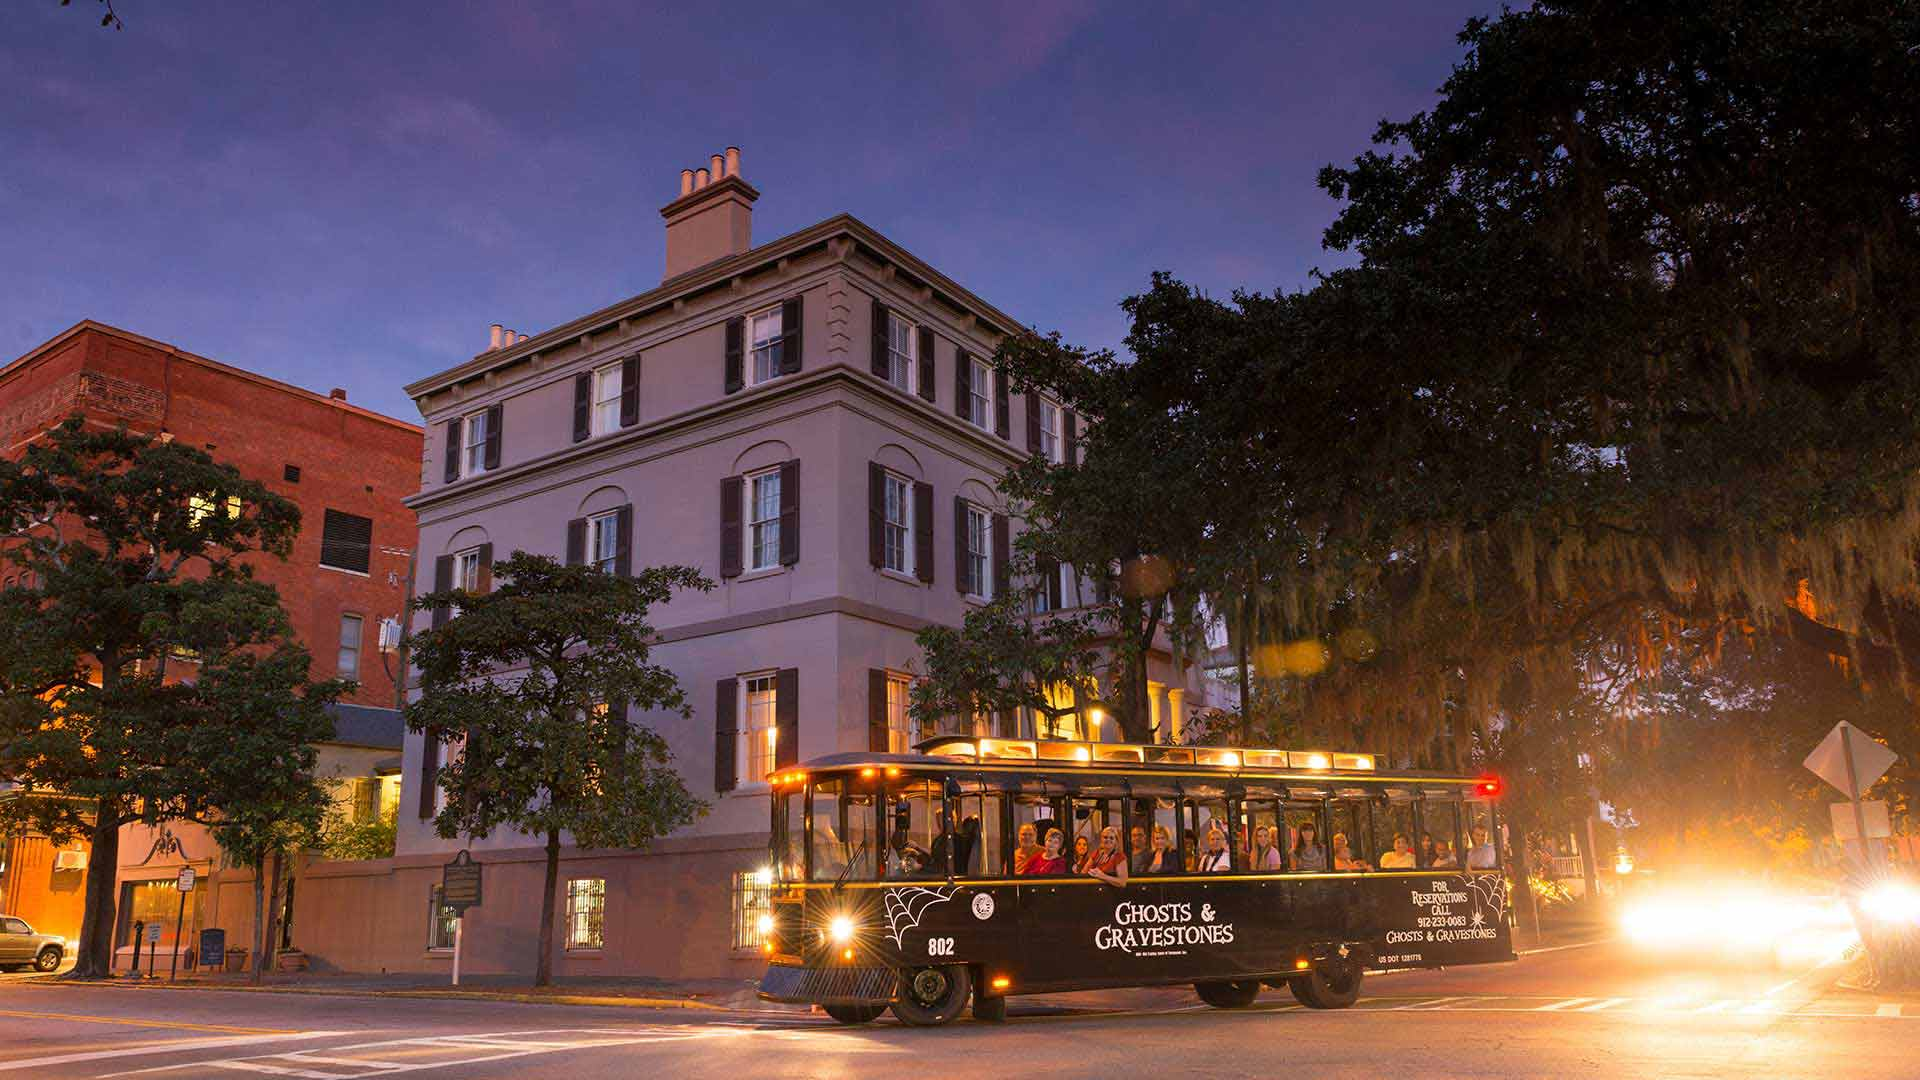 savannah ghost tour trolley at juliette gordon low house